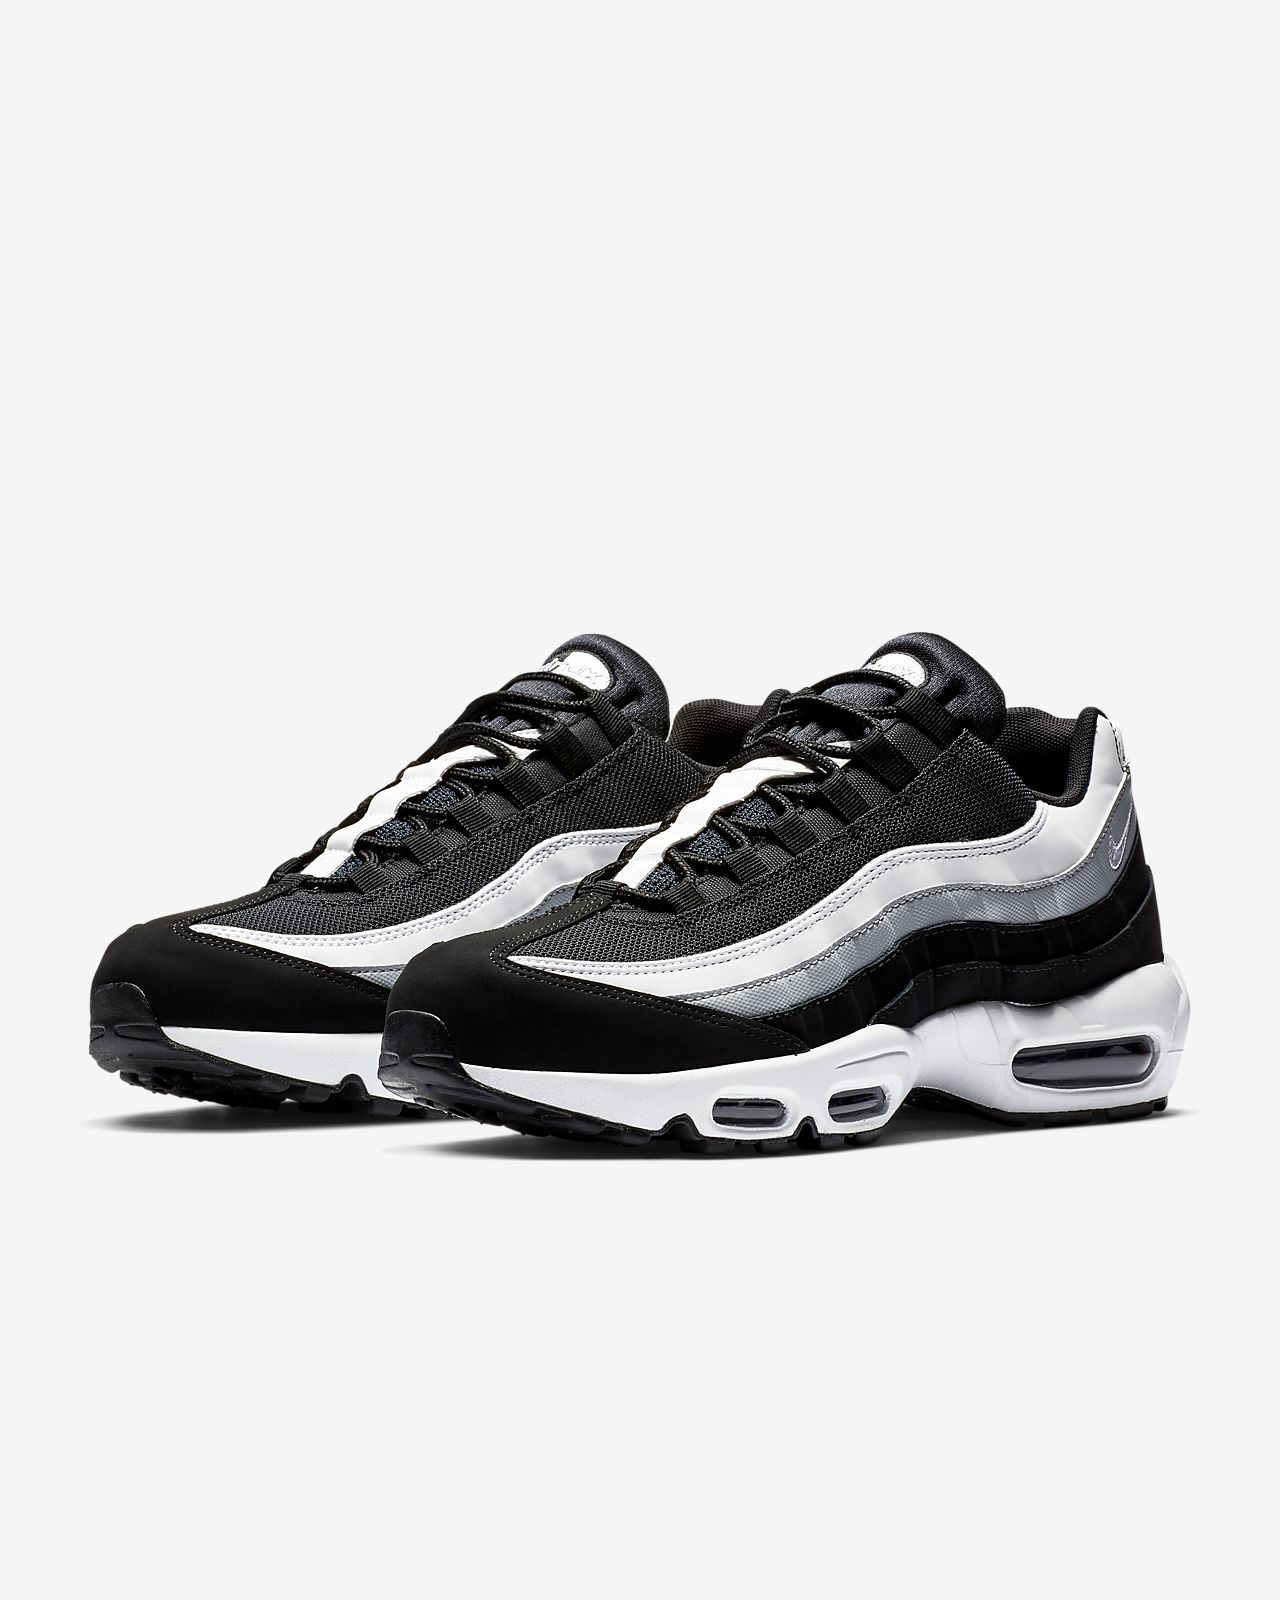 online retailer da287 4d870 ... Nike Air Max 95 Essential Men s Shoe